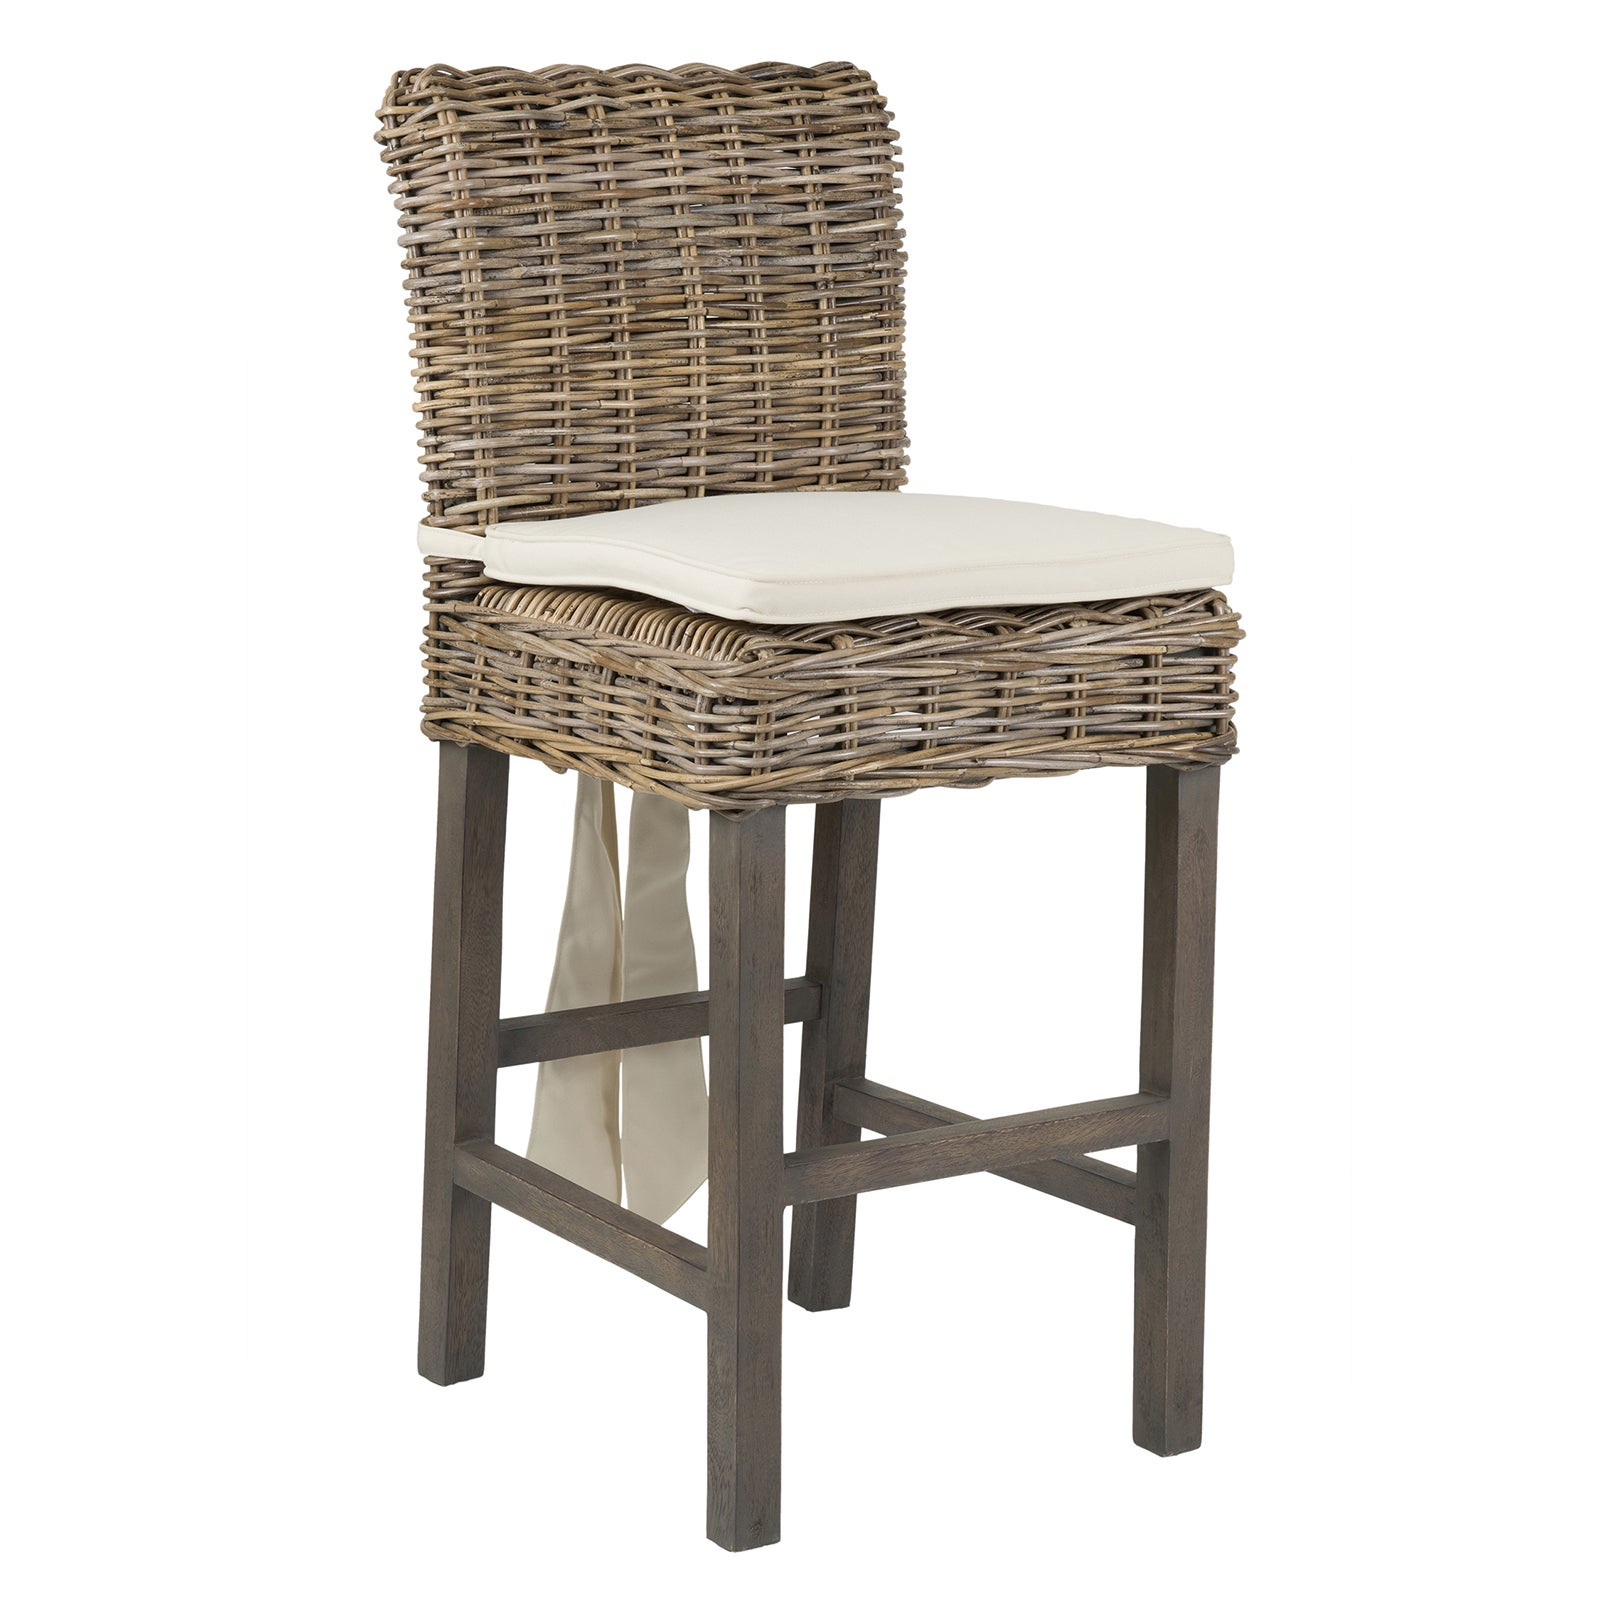 counter set stools size brown st pub wicker indoor height white safavieh shipping of thomas backless cart outdoor stool bar chairs table full outstanding